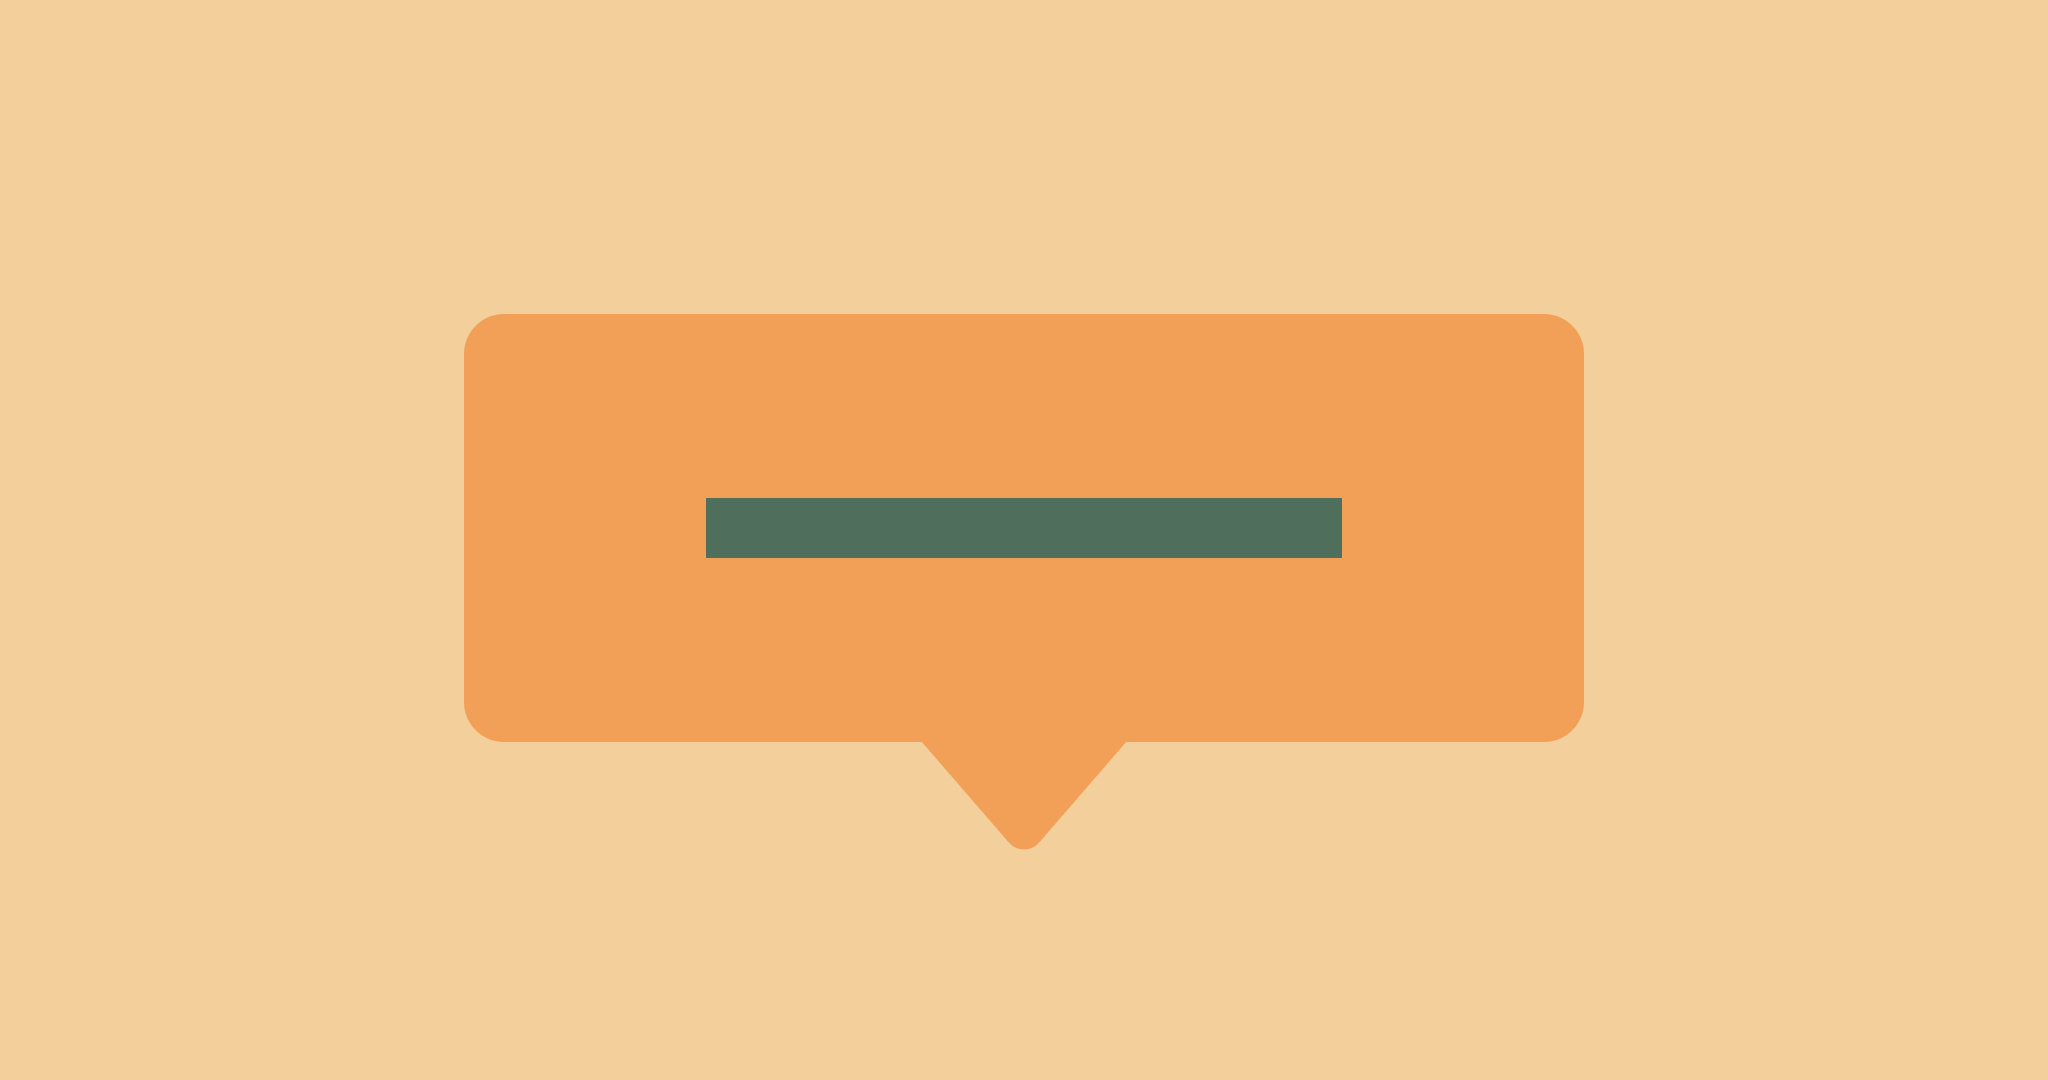 Creating Rounded Triangles In Css With Clip Path Border Svg Shapes Creative Bloq